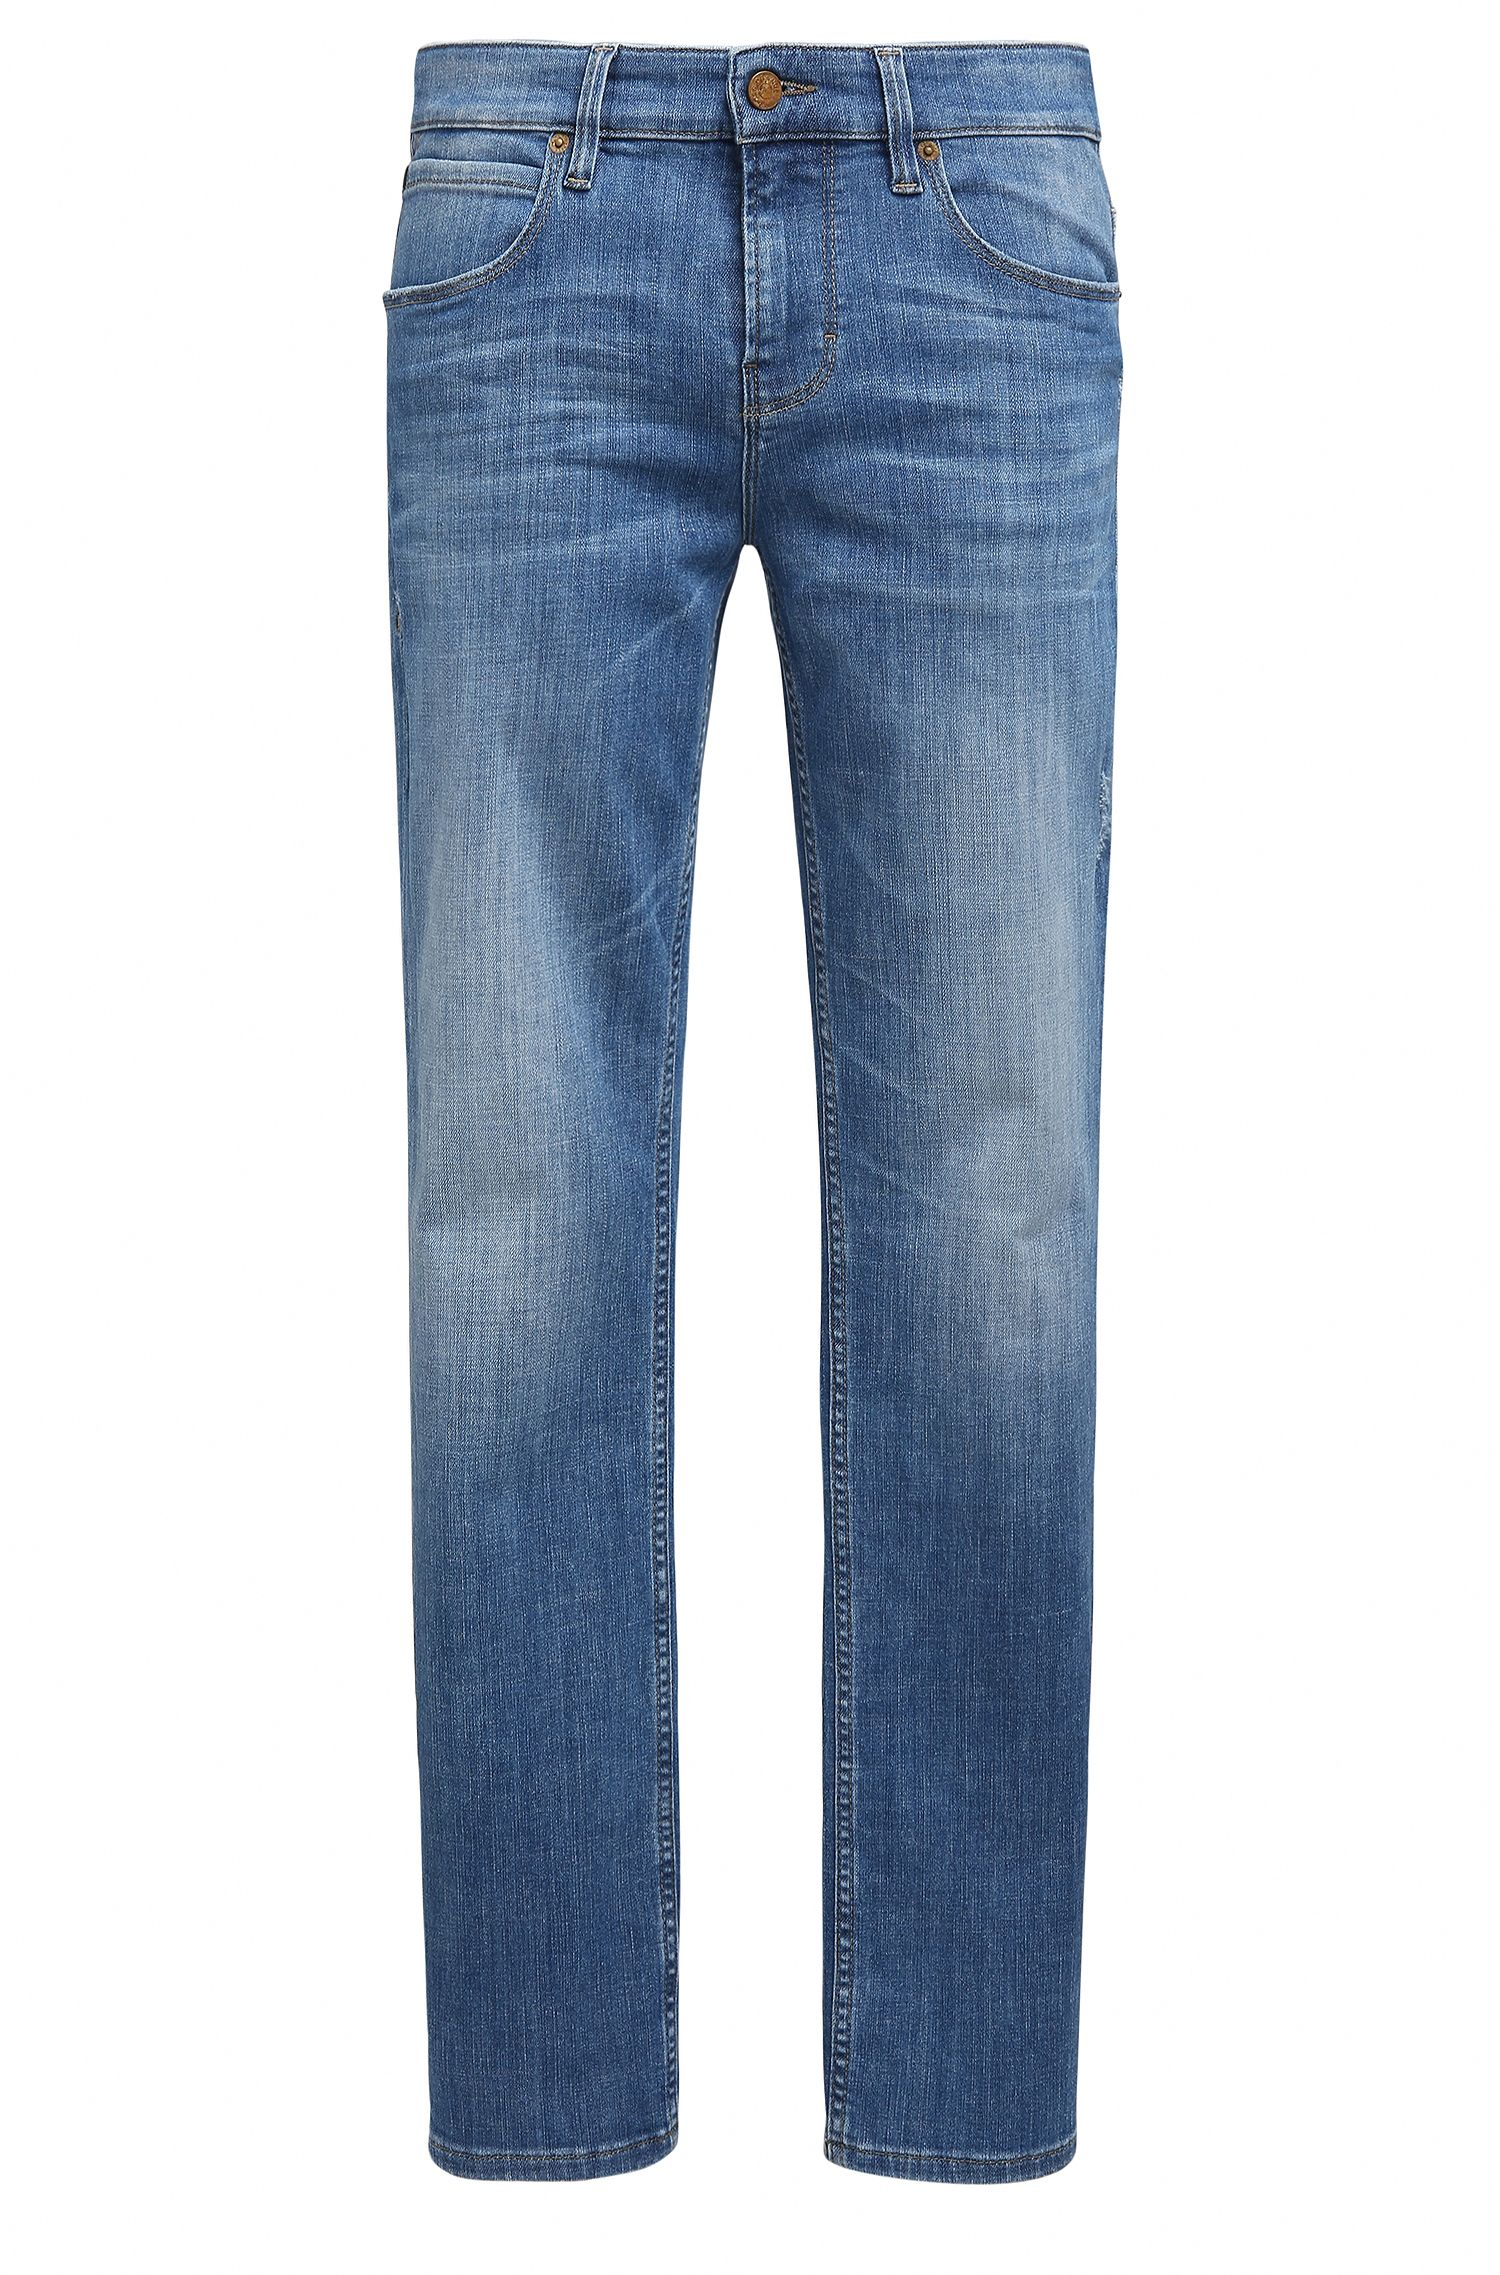 Jeans slim fit in twill di denim a tratteggi incrociati